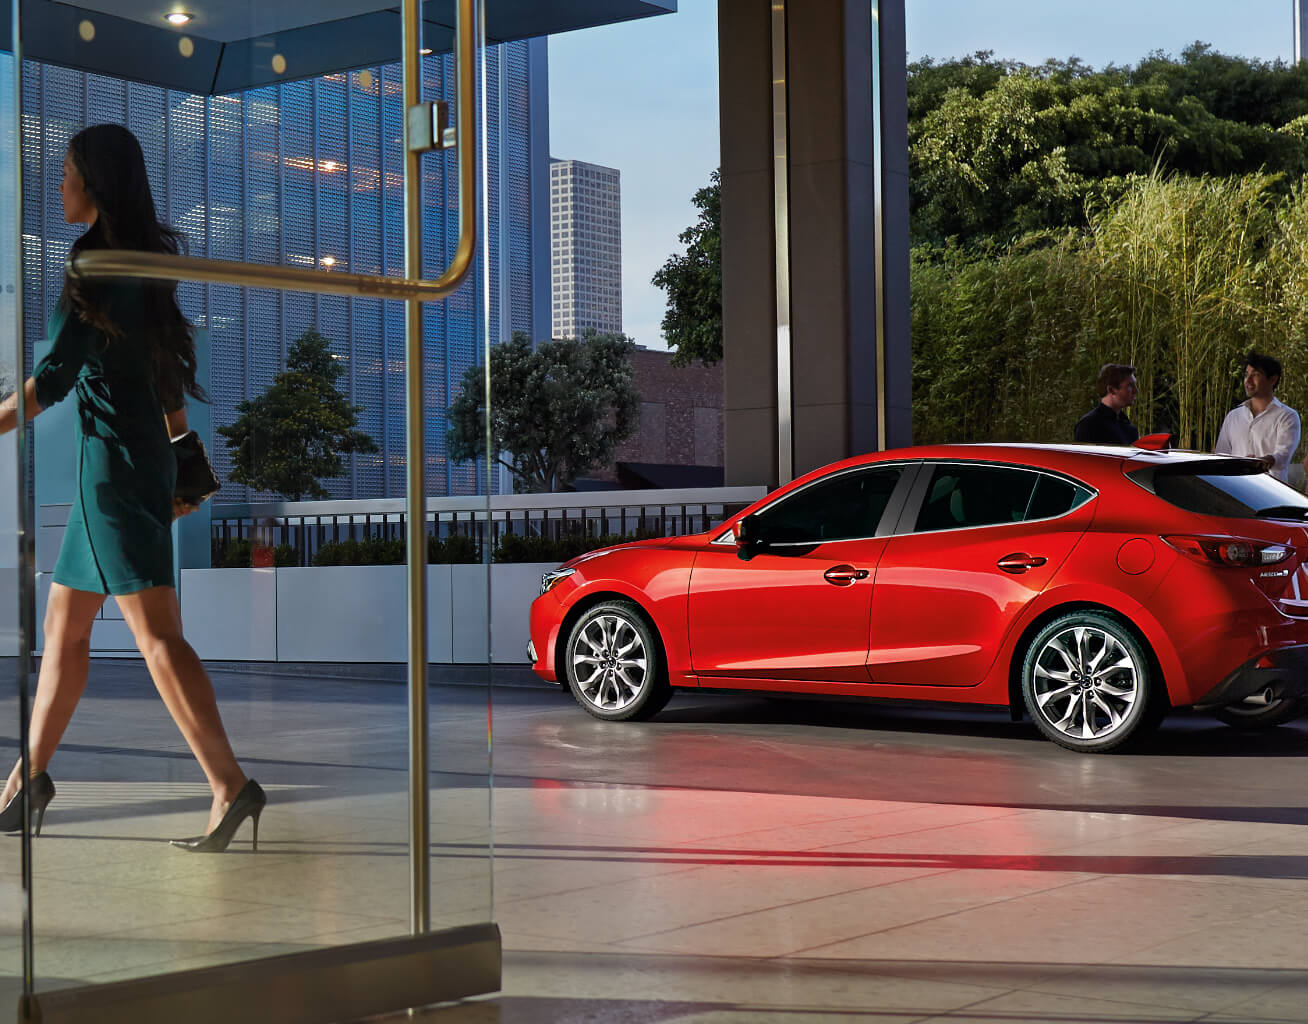 fourth used cars july of ca click pnw mazda irvine dealership event tuttle